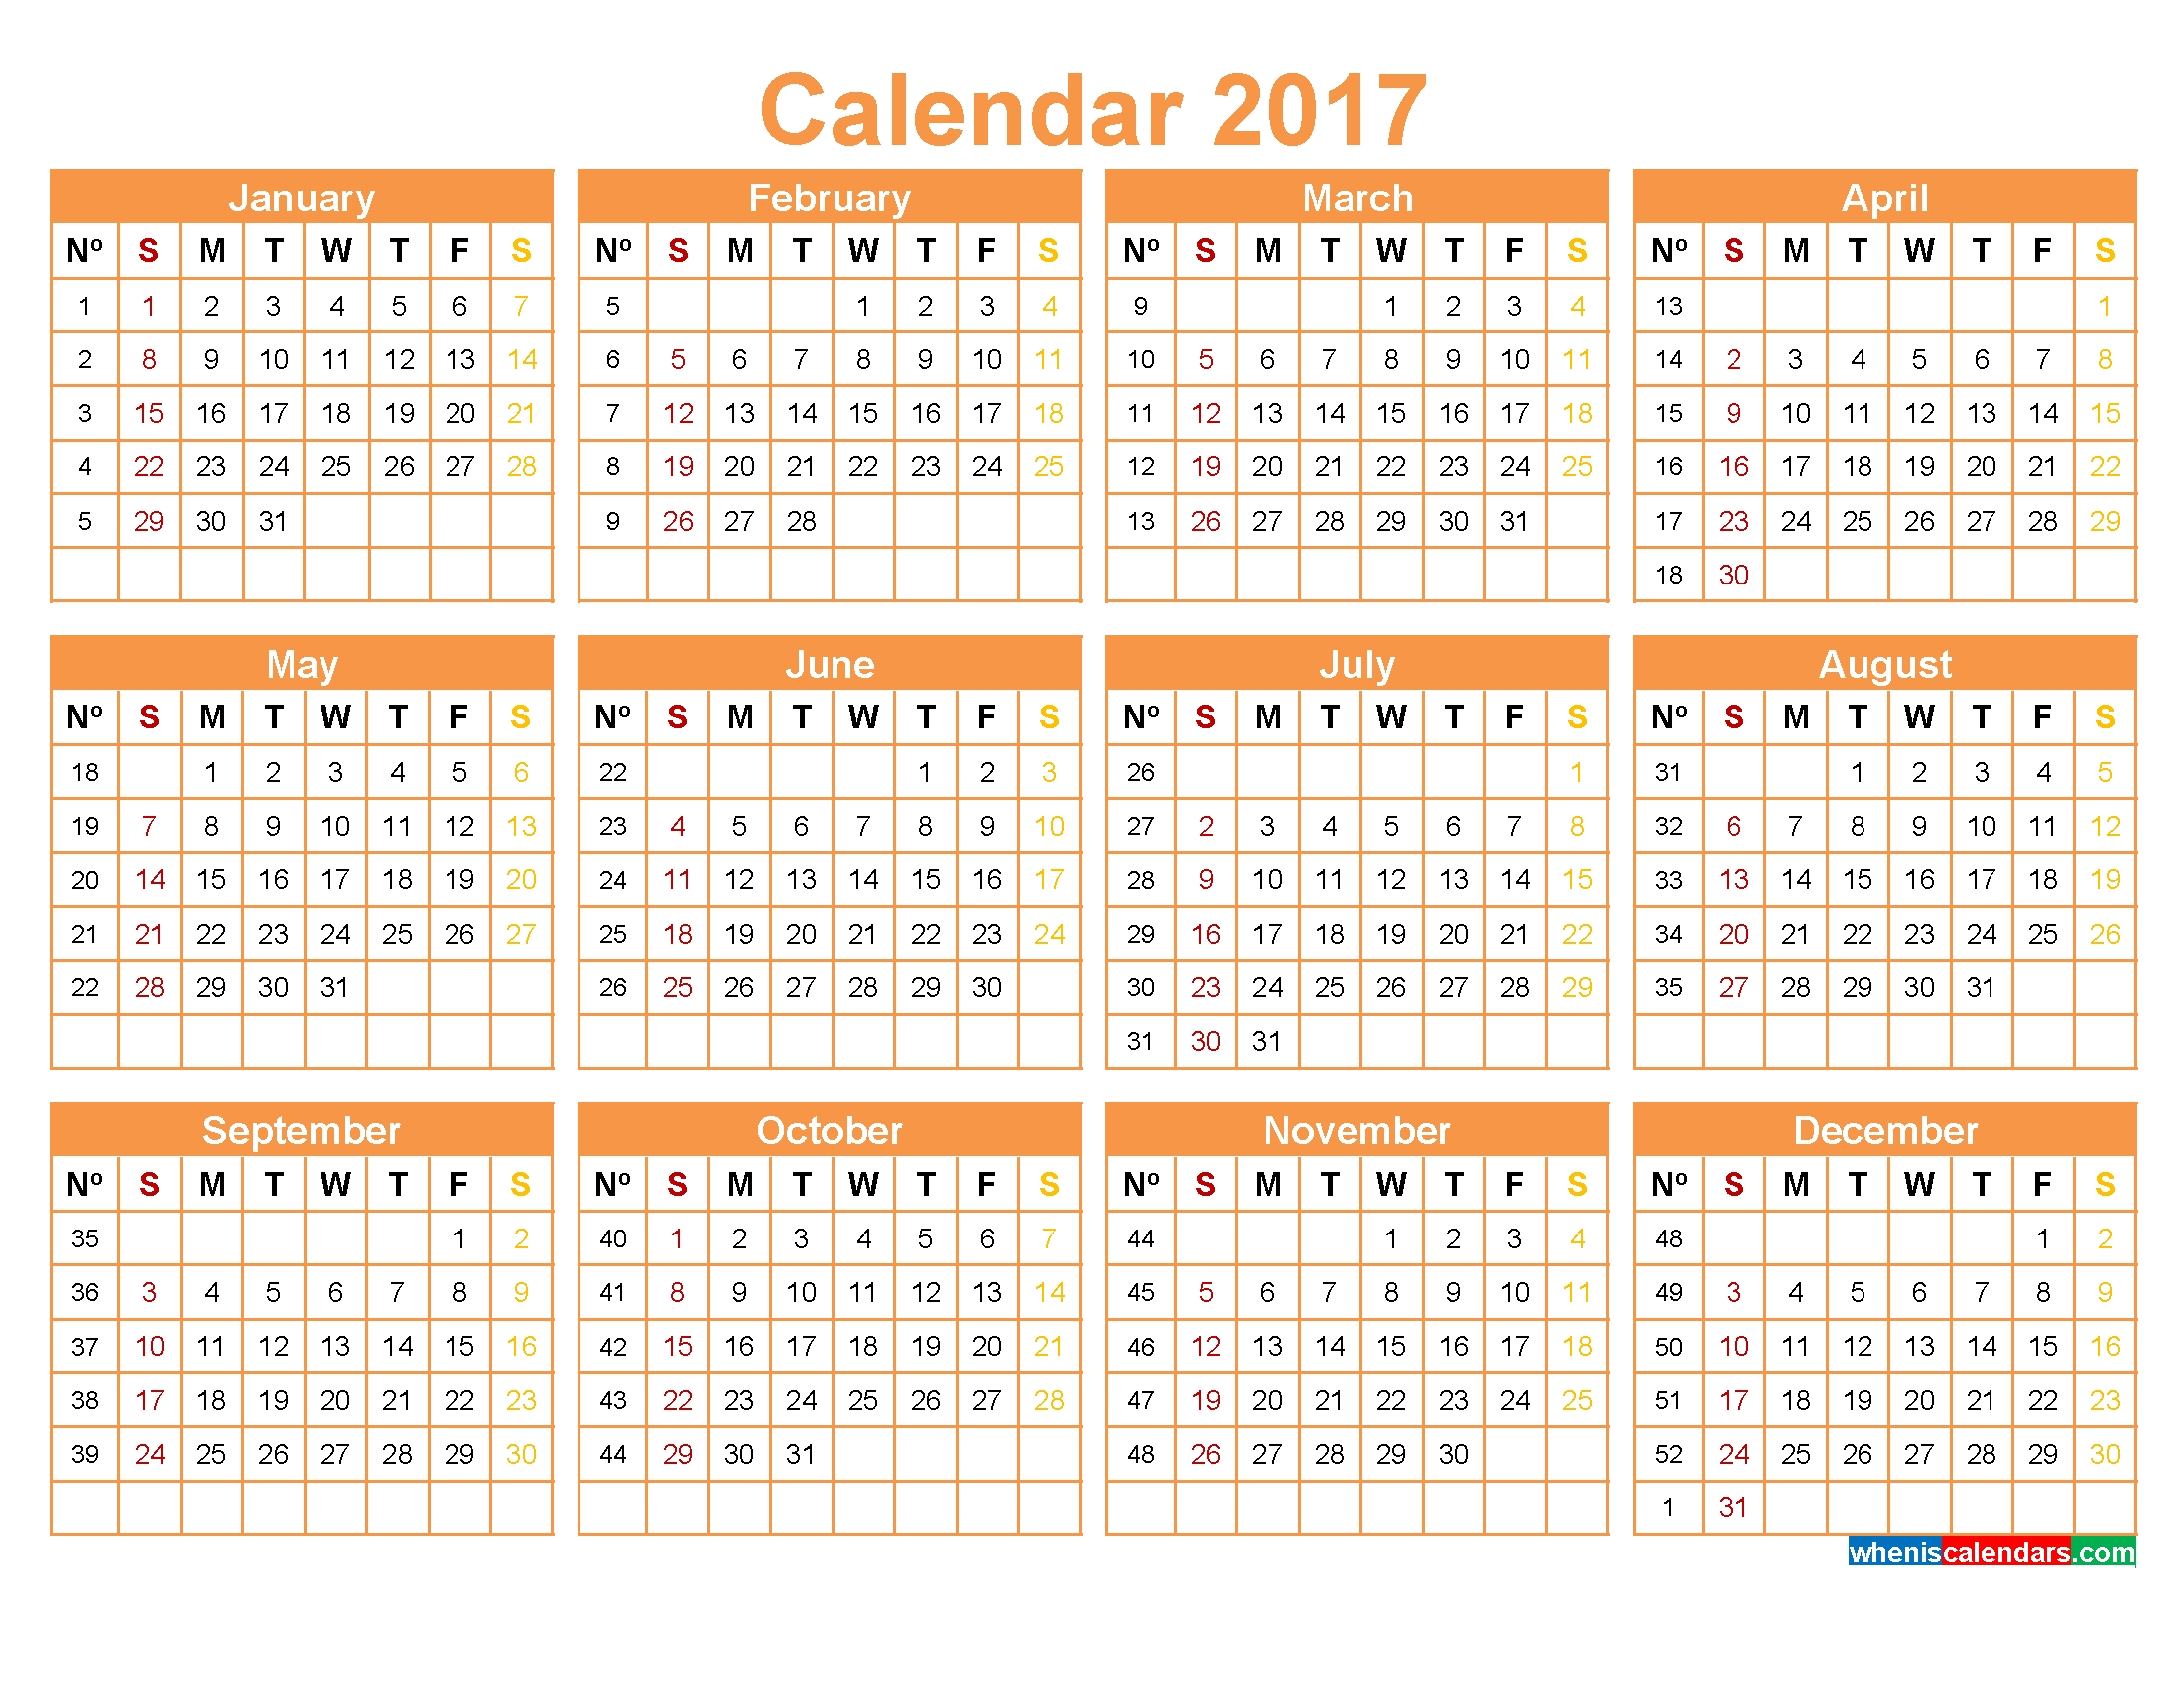 Calendar 2017 With Week Numbers Yearly Calendar Template 20183abry